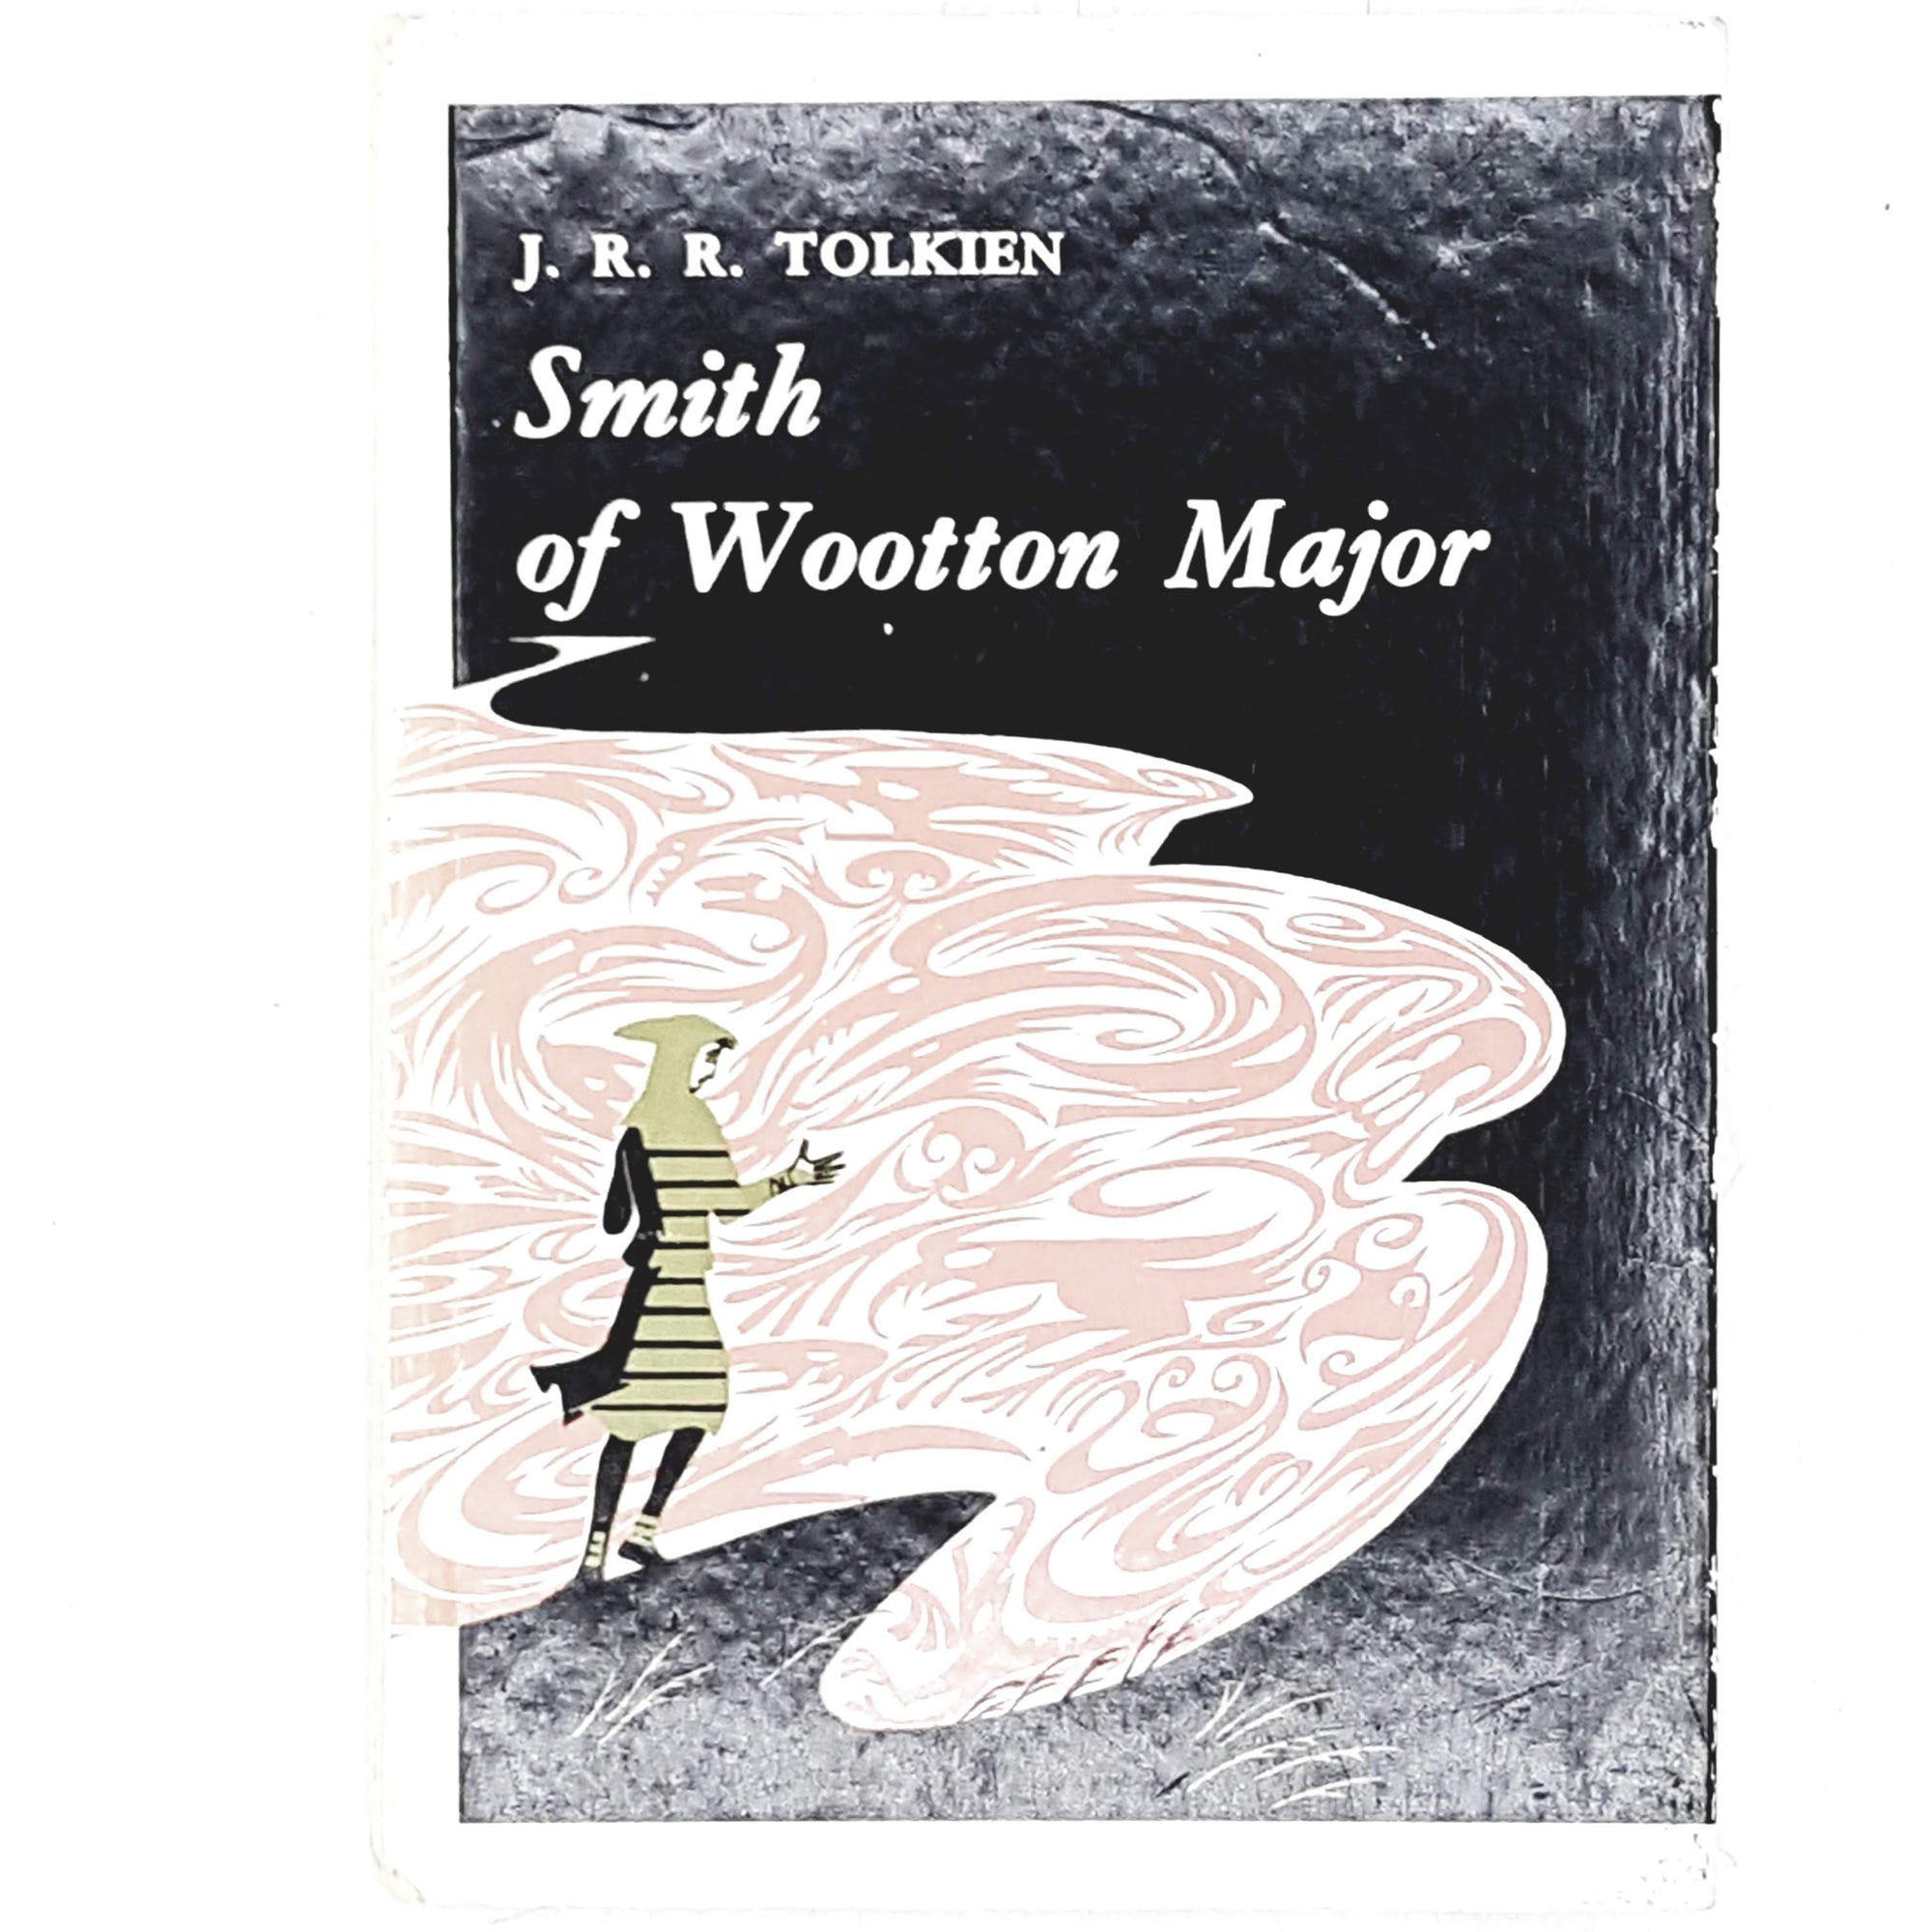 Illustrated Tolkien's Smith of Wotton Major 1967